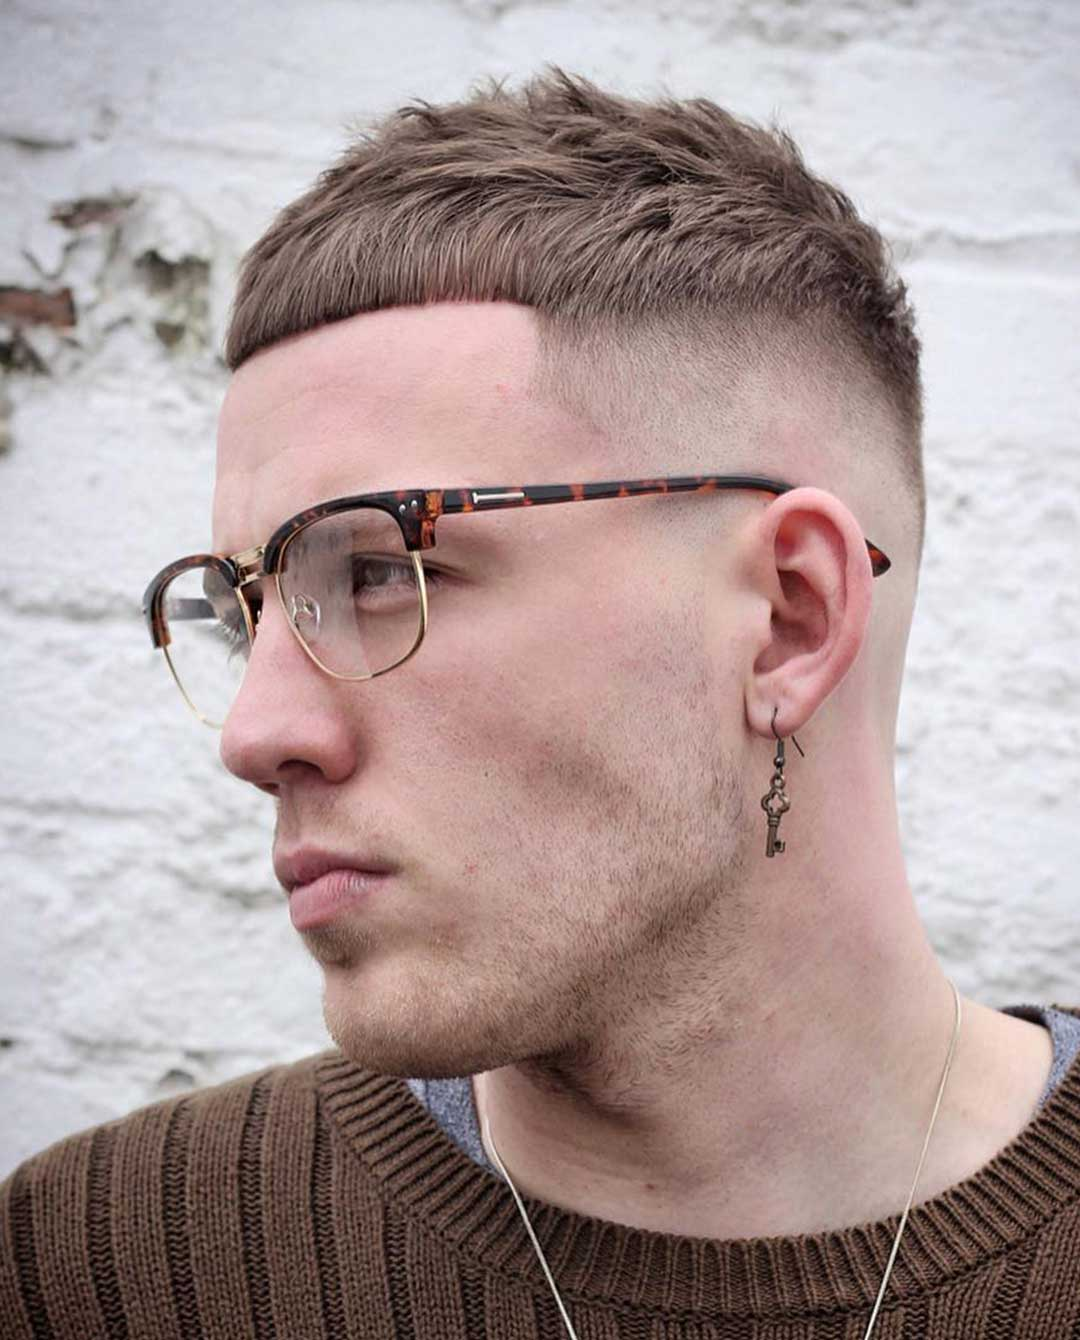 Undercut + Texturized Crown